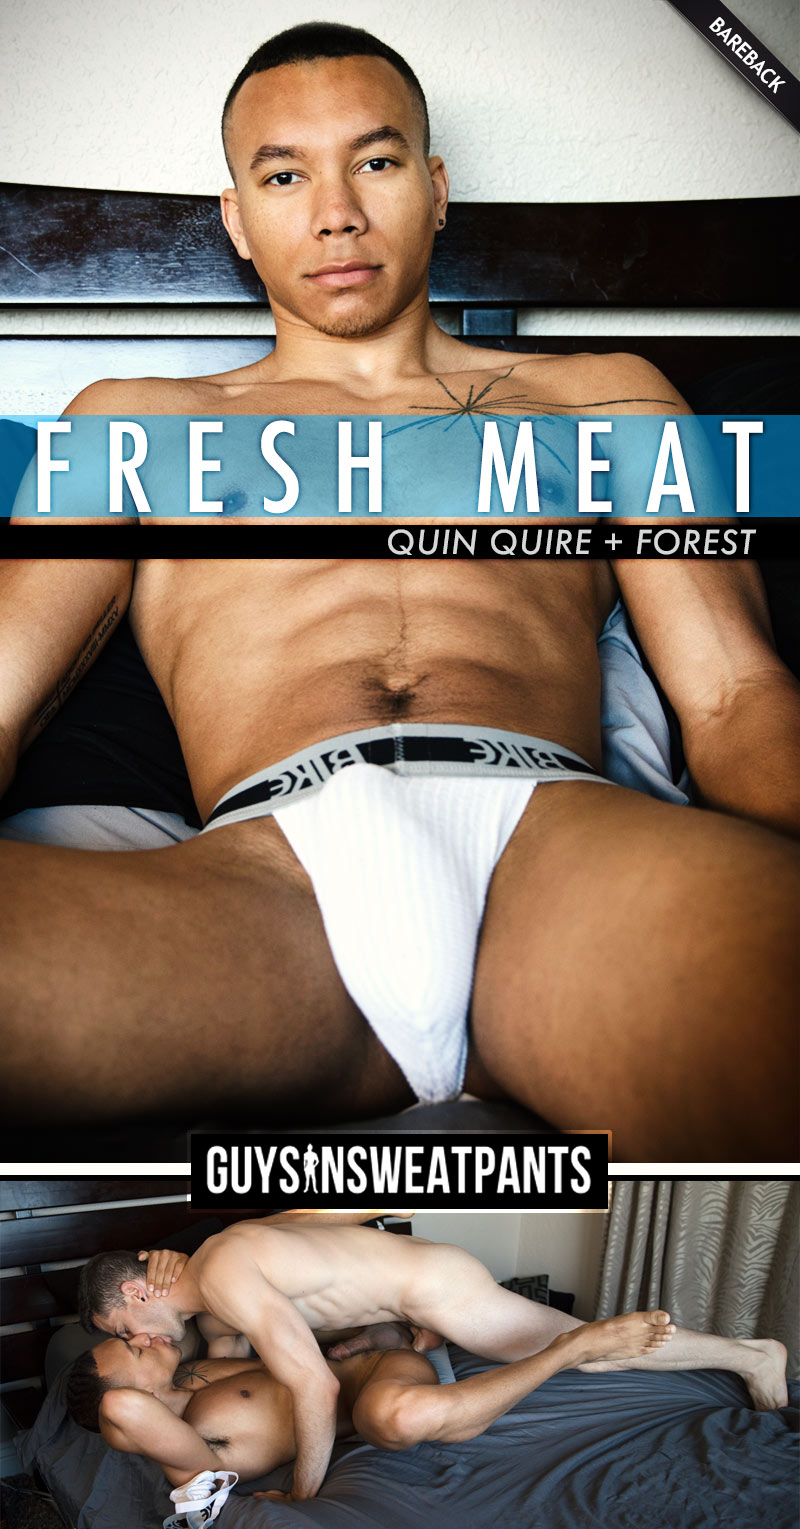 Fresh Meat (Quin Quire and Fresh Meat Forest Flip-Fuck) at Guys In Sweatpants